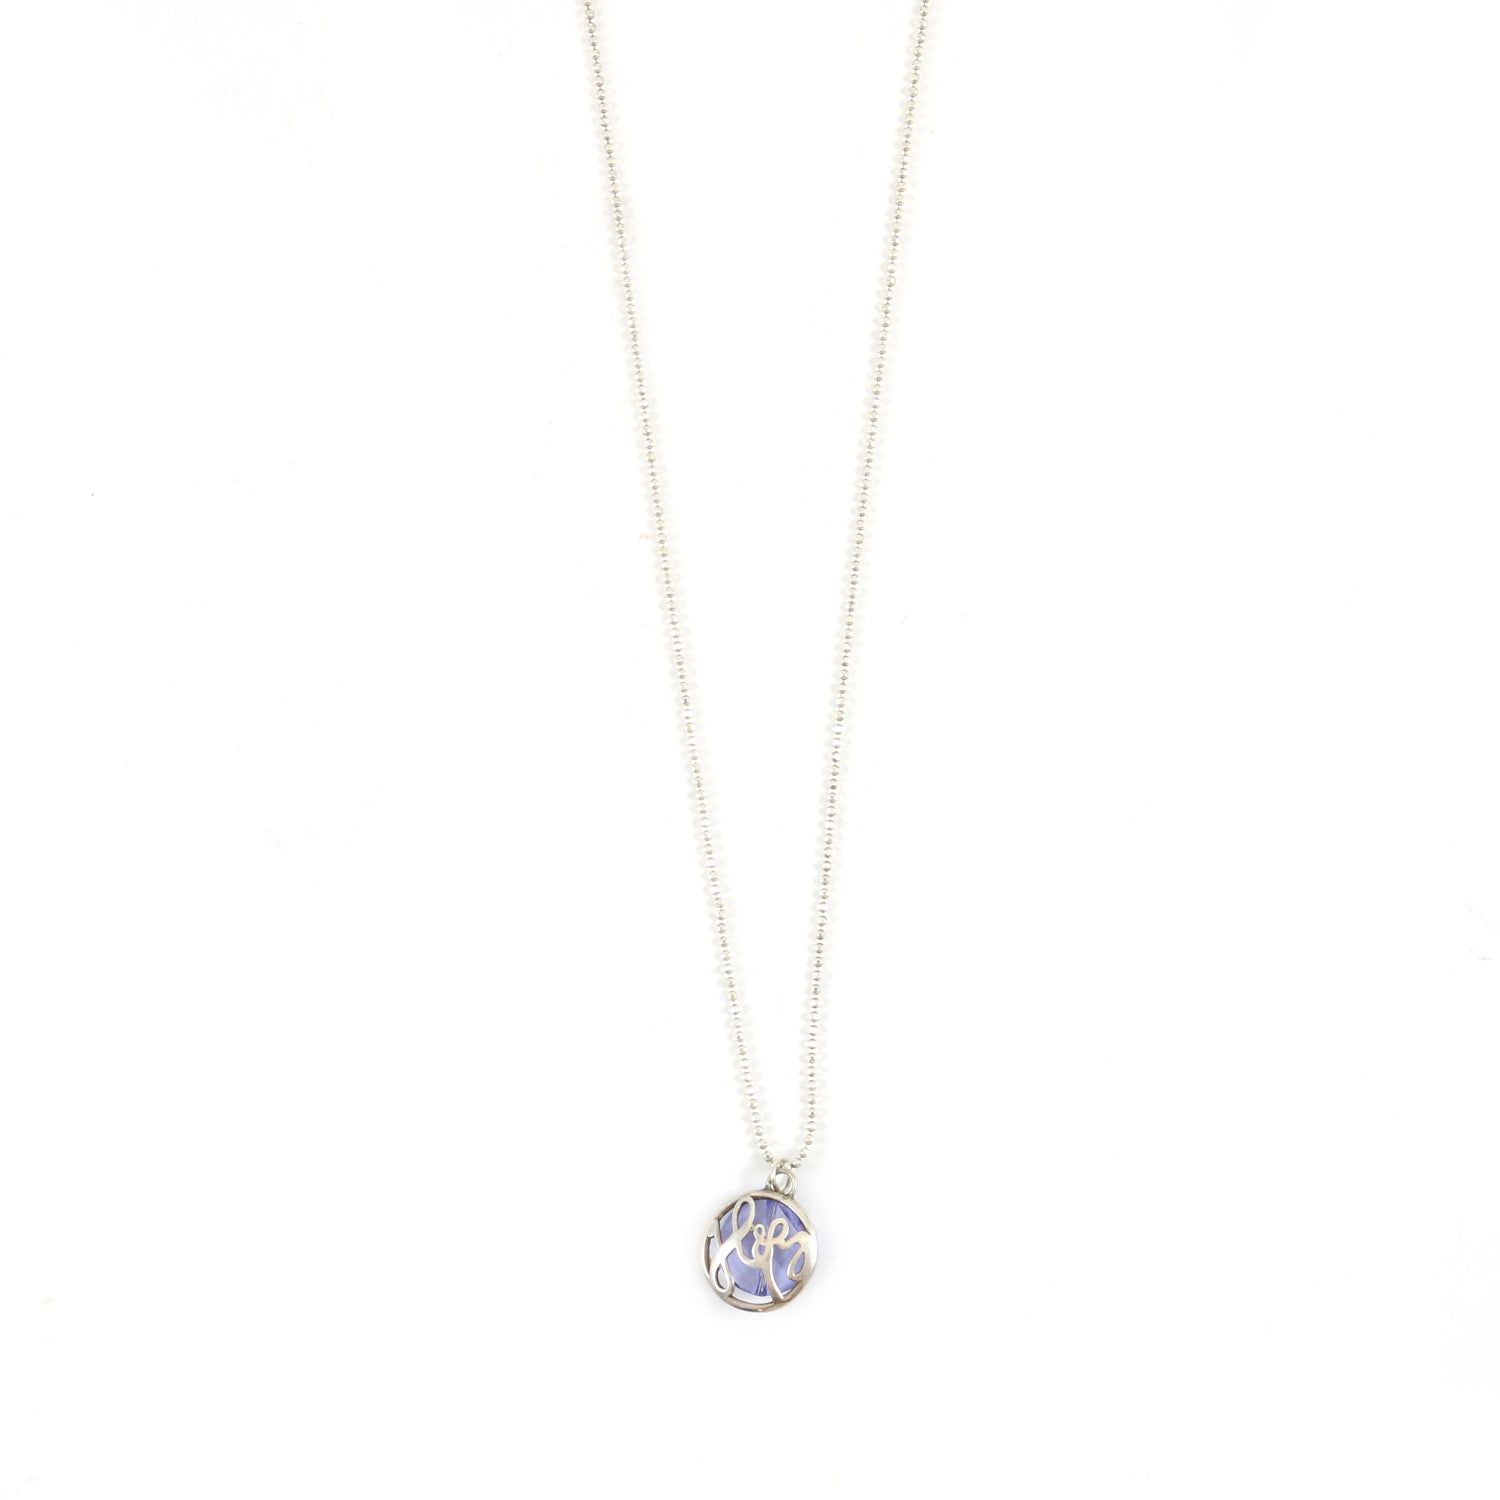 Signature Crystal Necklace